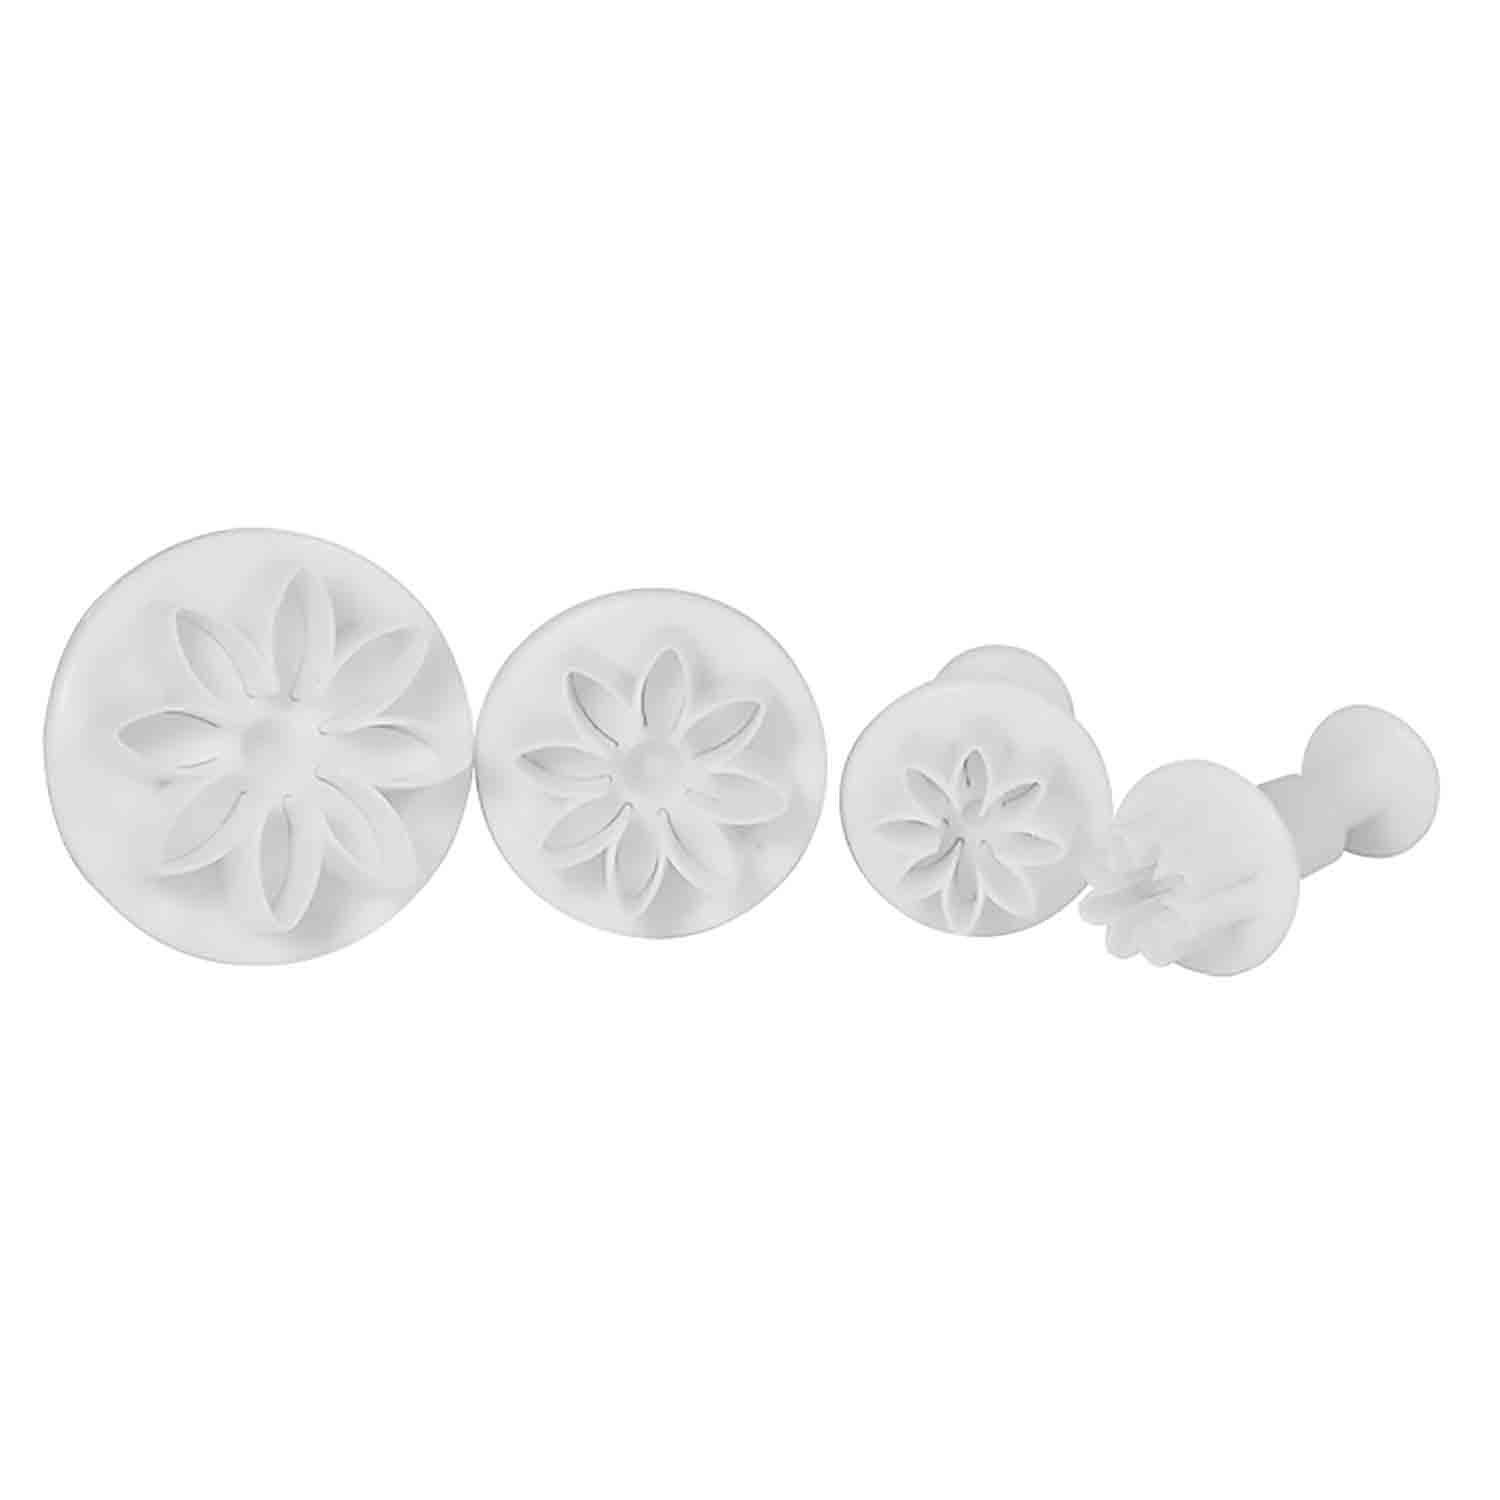 Plunger Fondant and Gum Paste Cutters